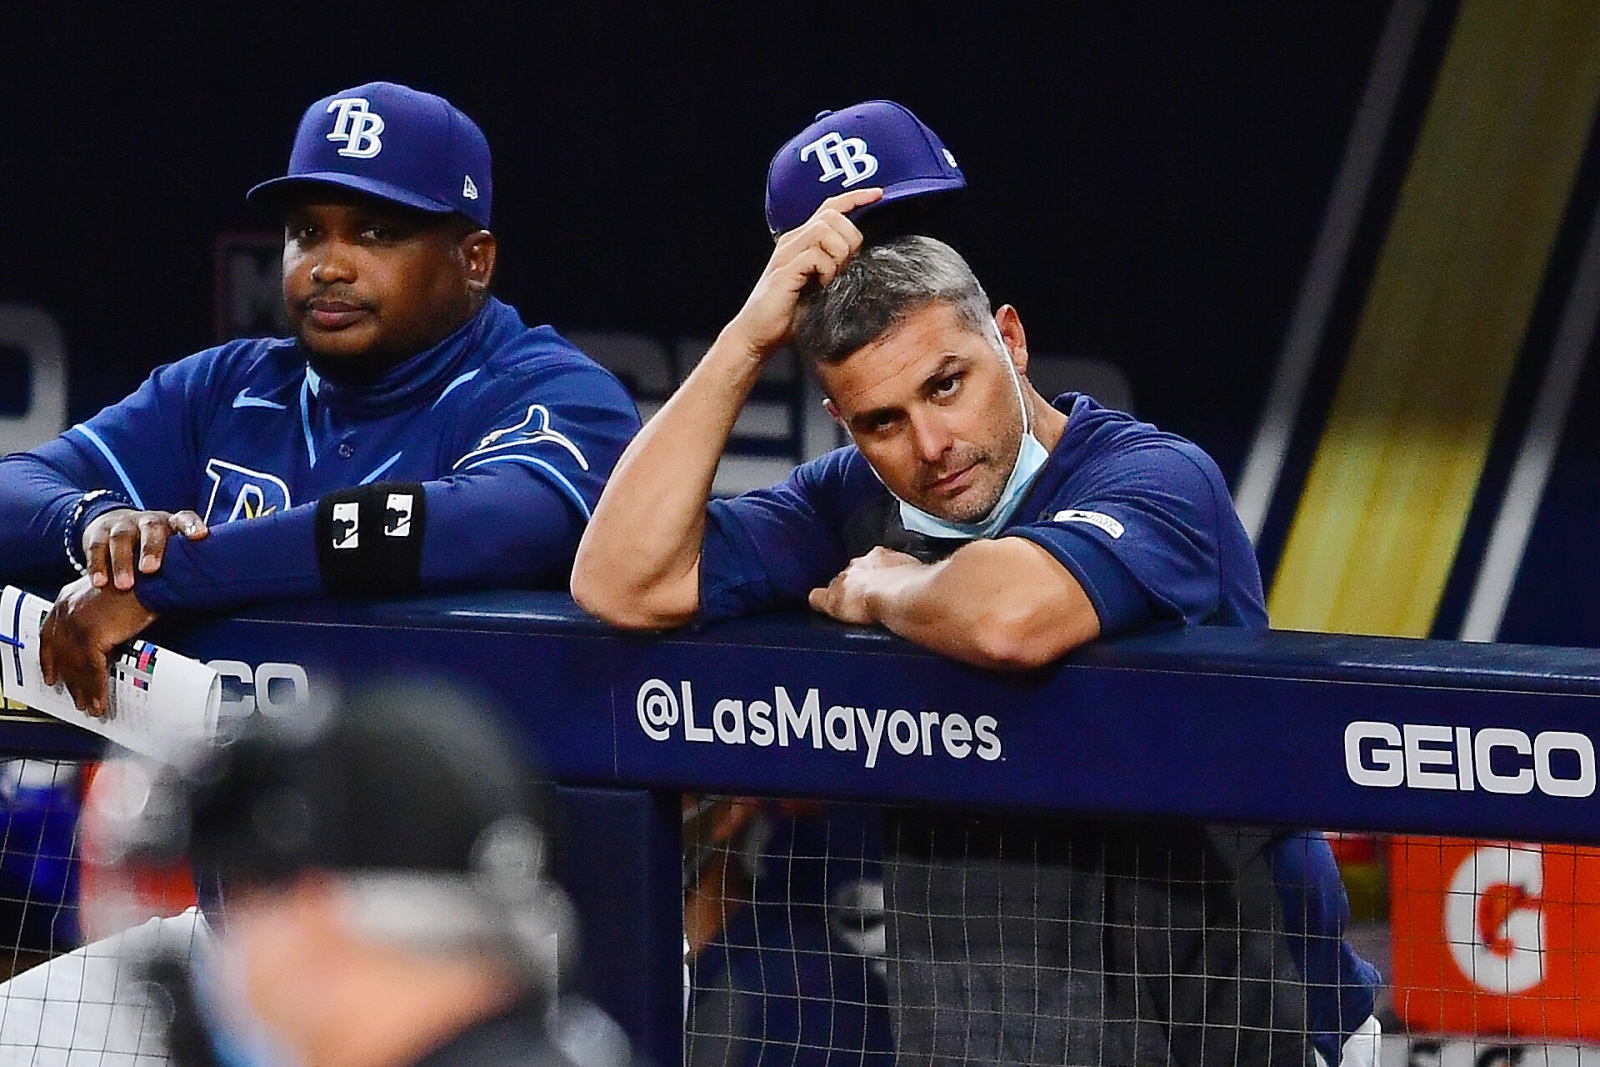 twitter panics over kevin cash pulling another rays starter in a shutout https fansided com 2020 10 17 twitter panics over kevin cash pulling another rays starter in the middle of a shutout